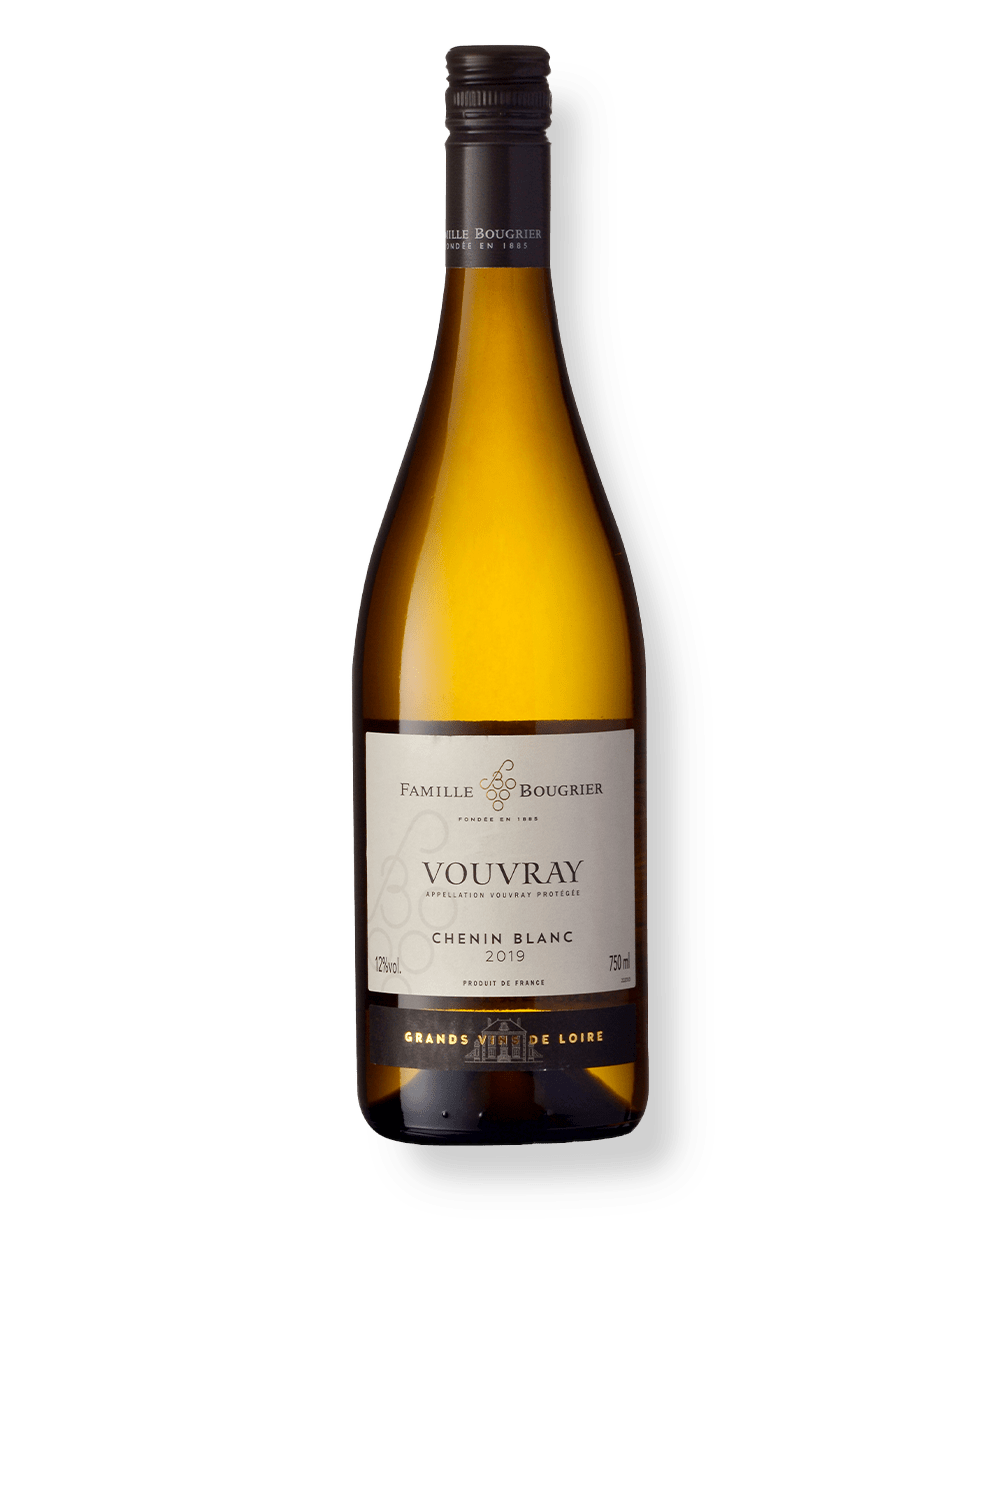 025034-Bougrier-Vouvray-2019